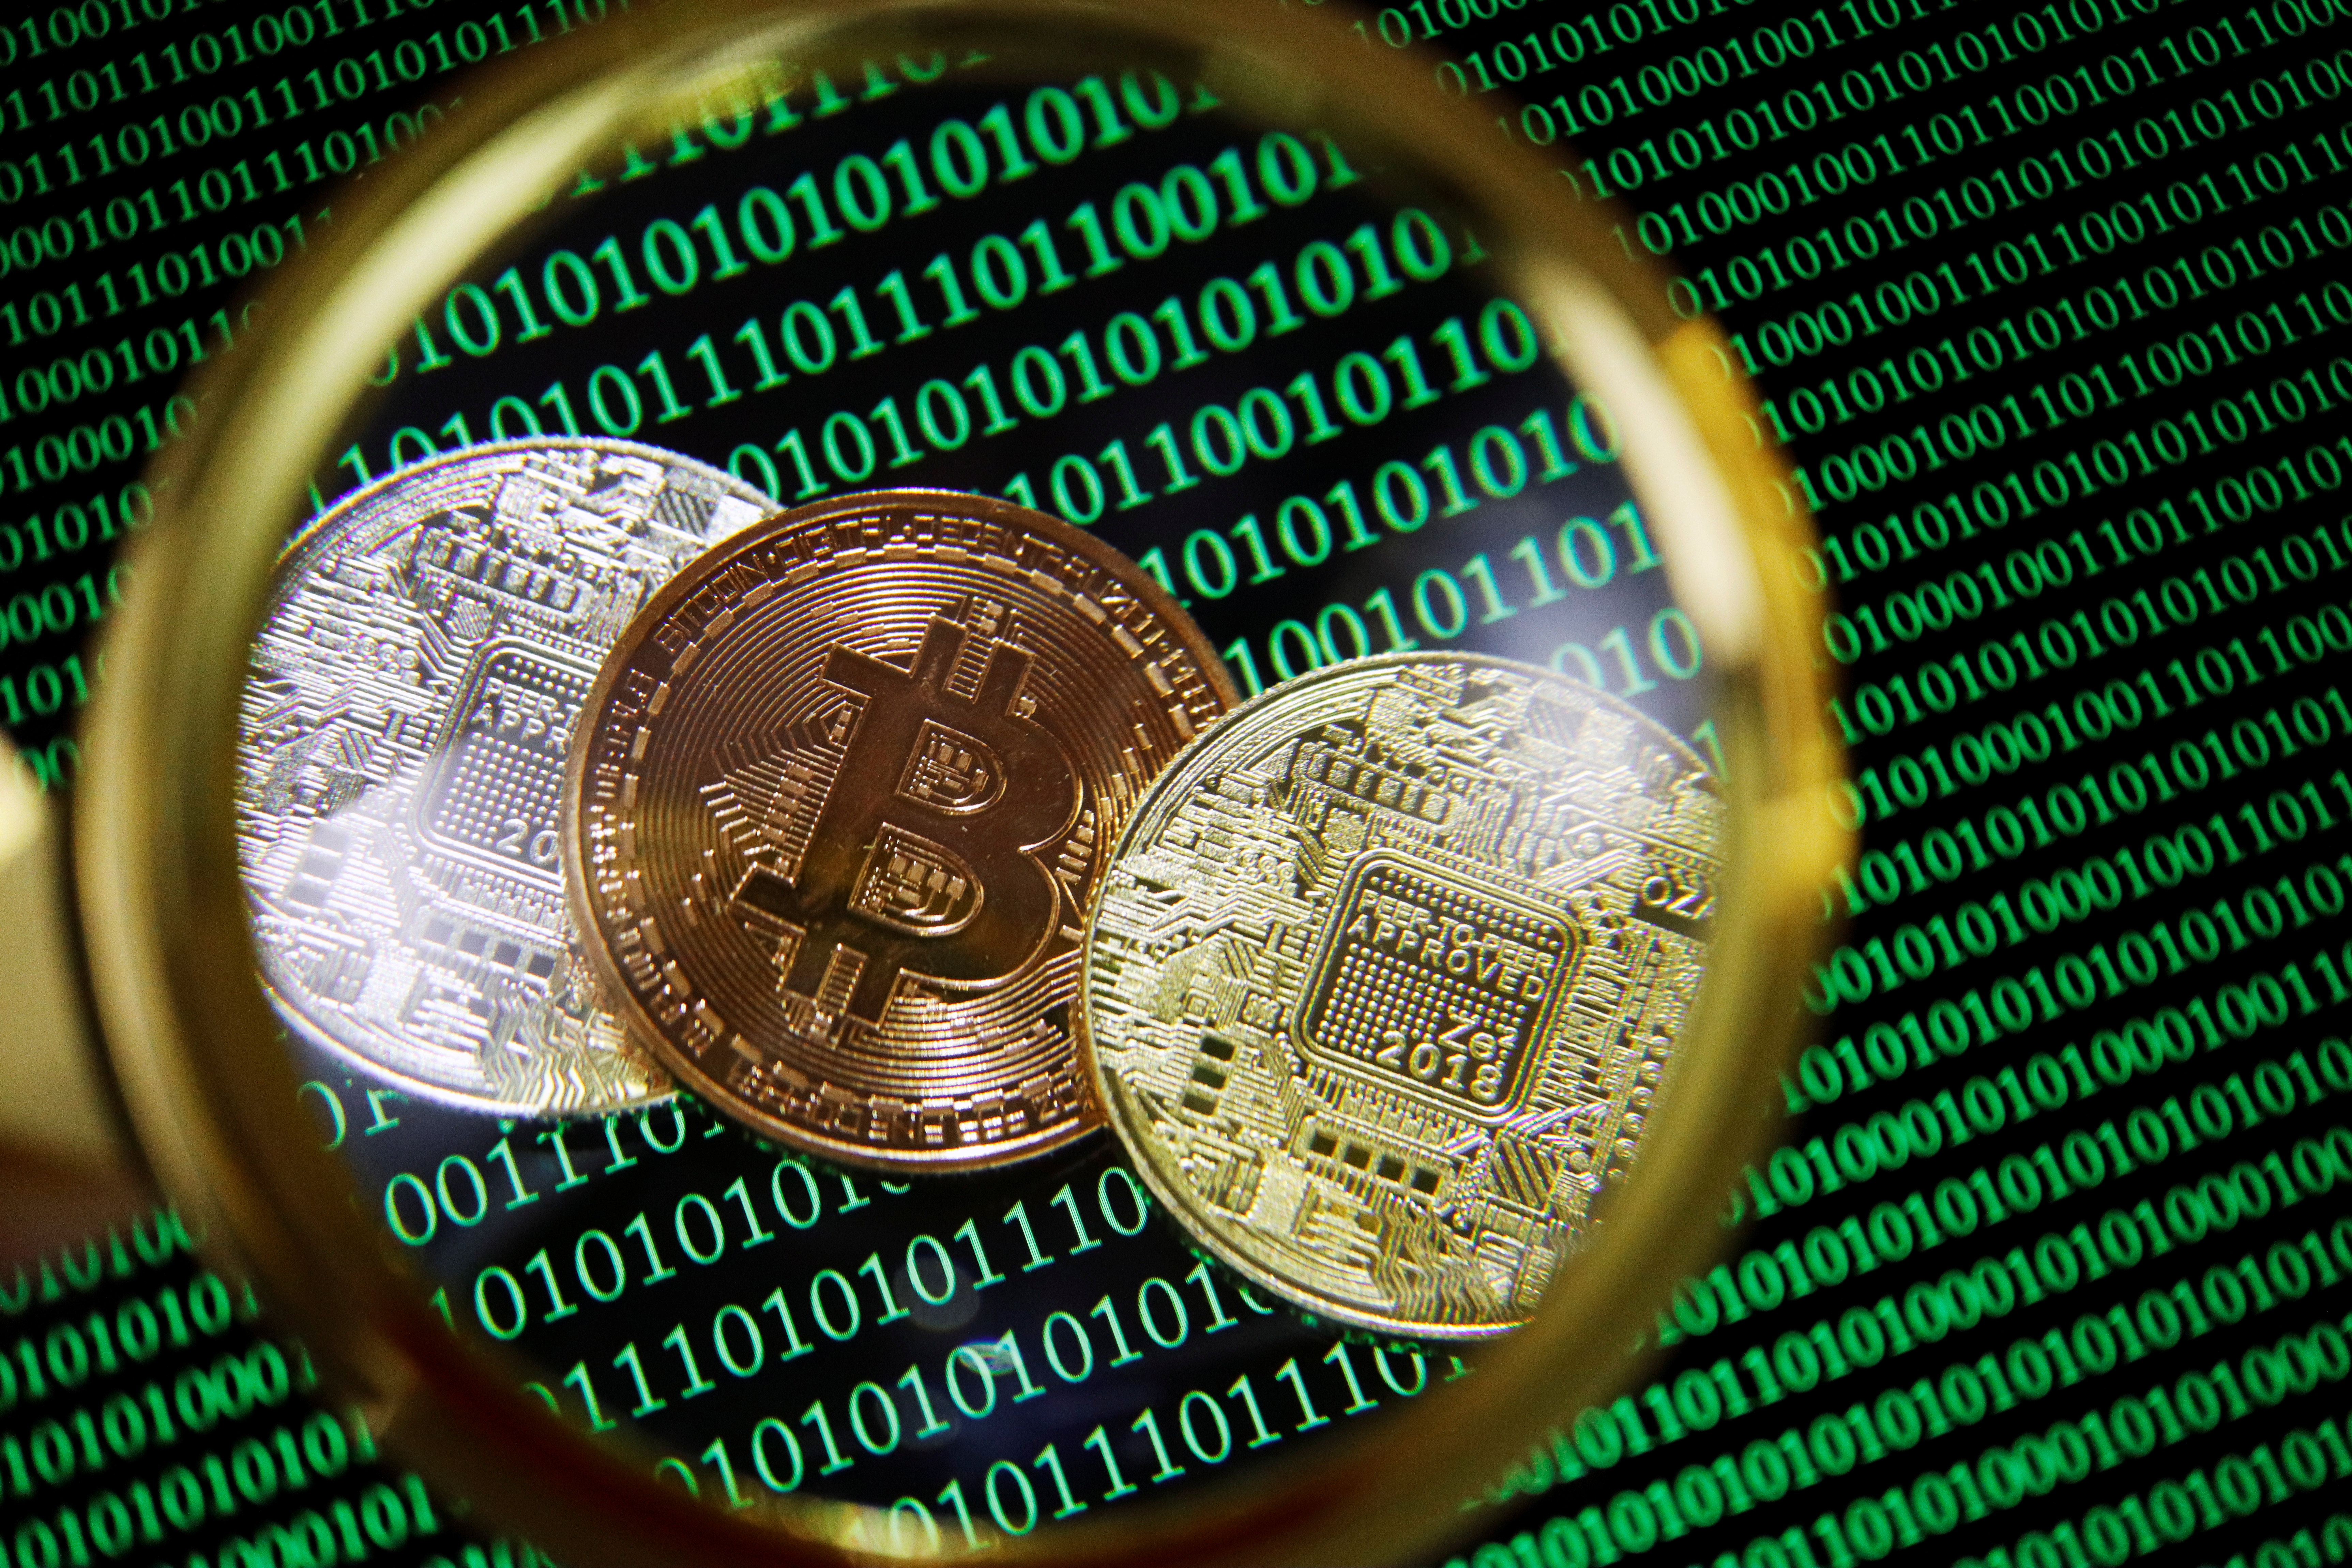 Representations of Bitcoin and other cryptocurrencies on a screen showing binary codes are seen through a magnifying glass in this illustration picture taken September 27, 2021. REUTERS/Florence Lo/Illustration